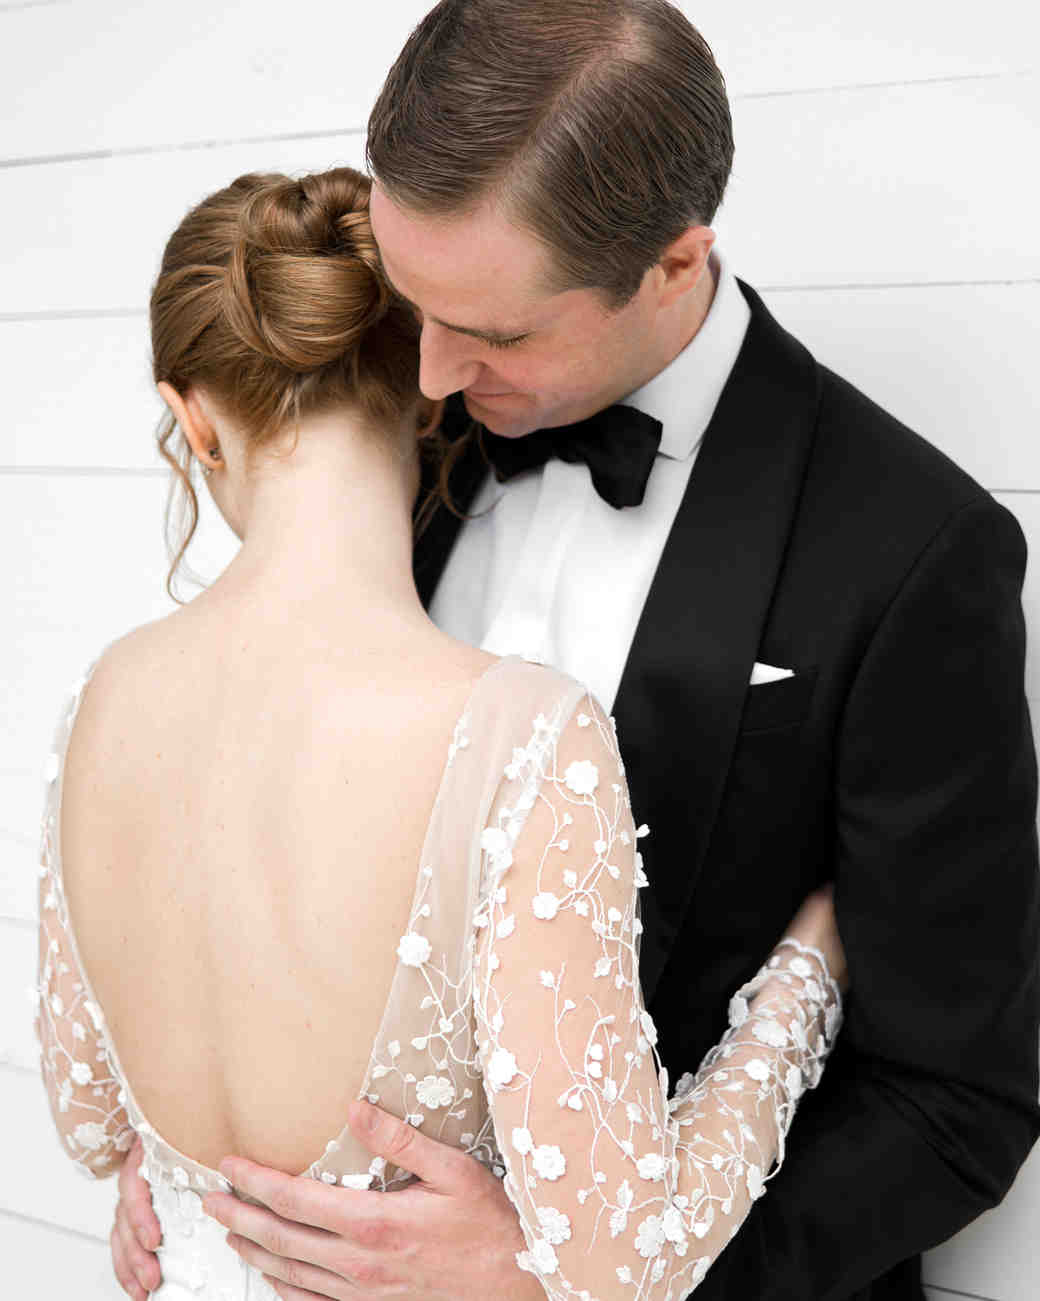 brittany peter wedding couple hugging bride backless dress